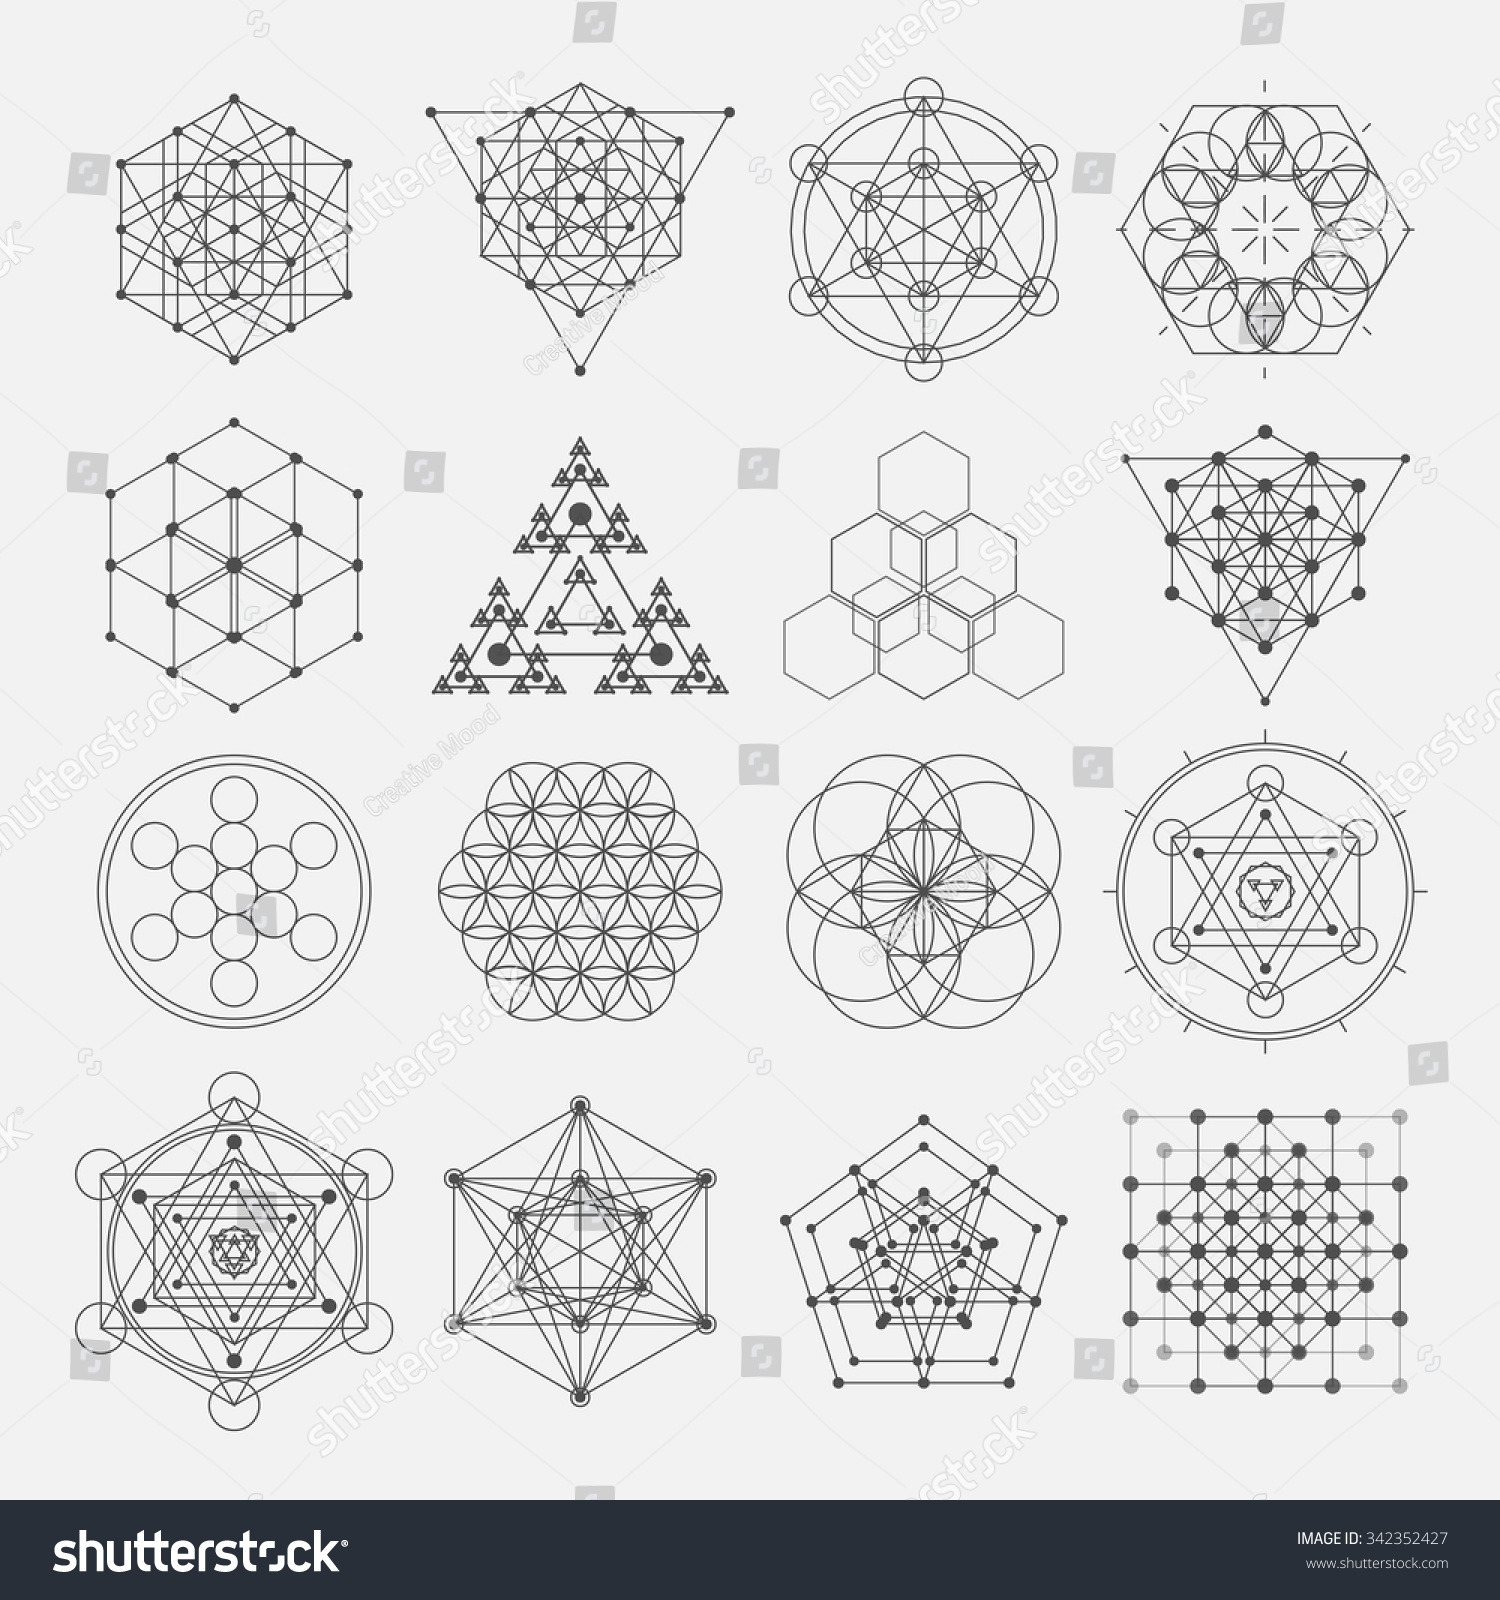 Sacred Geometry Vector Design Elements Alchemy Stock Vector ...